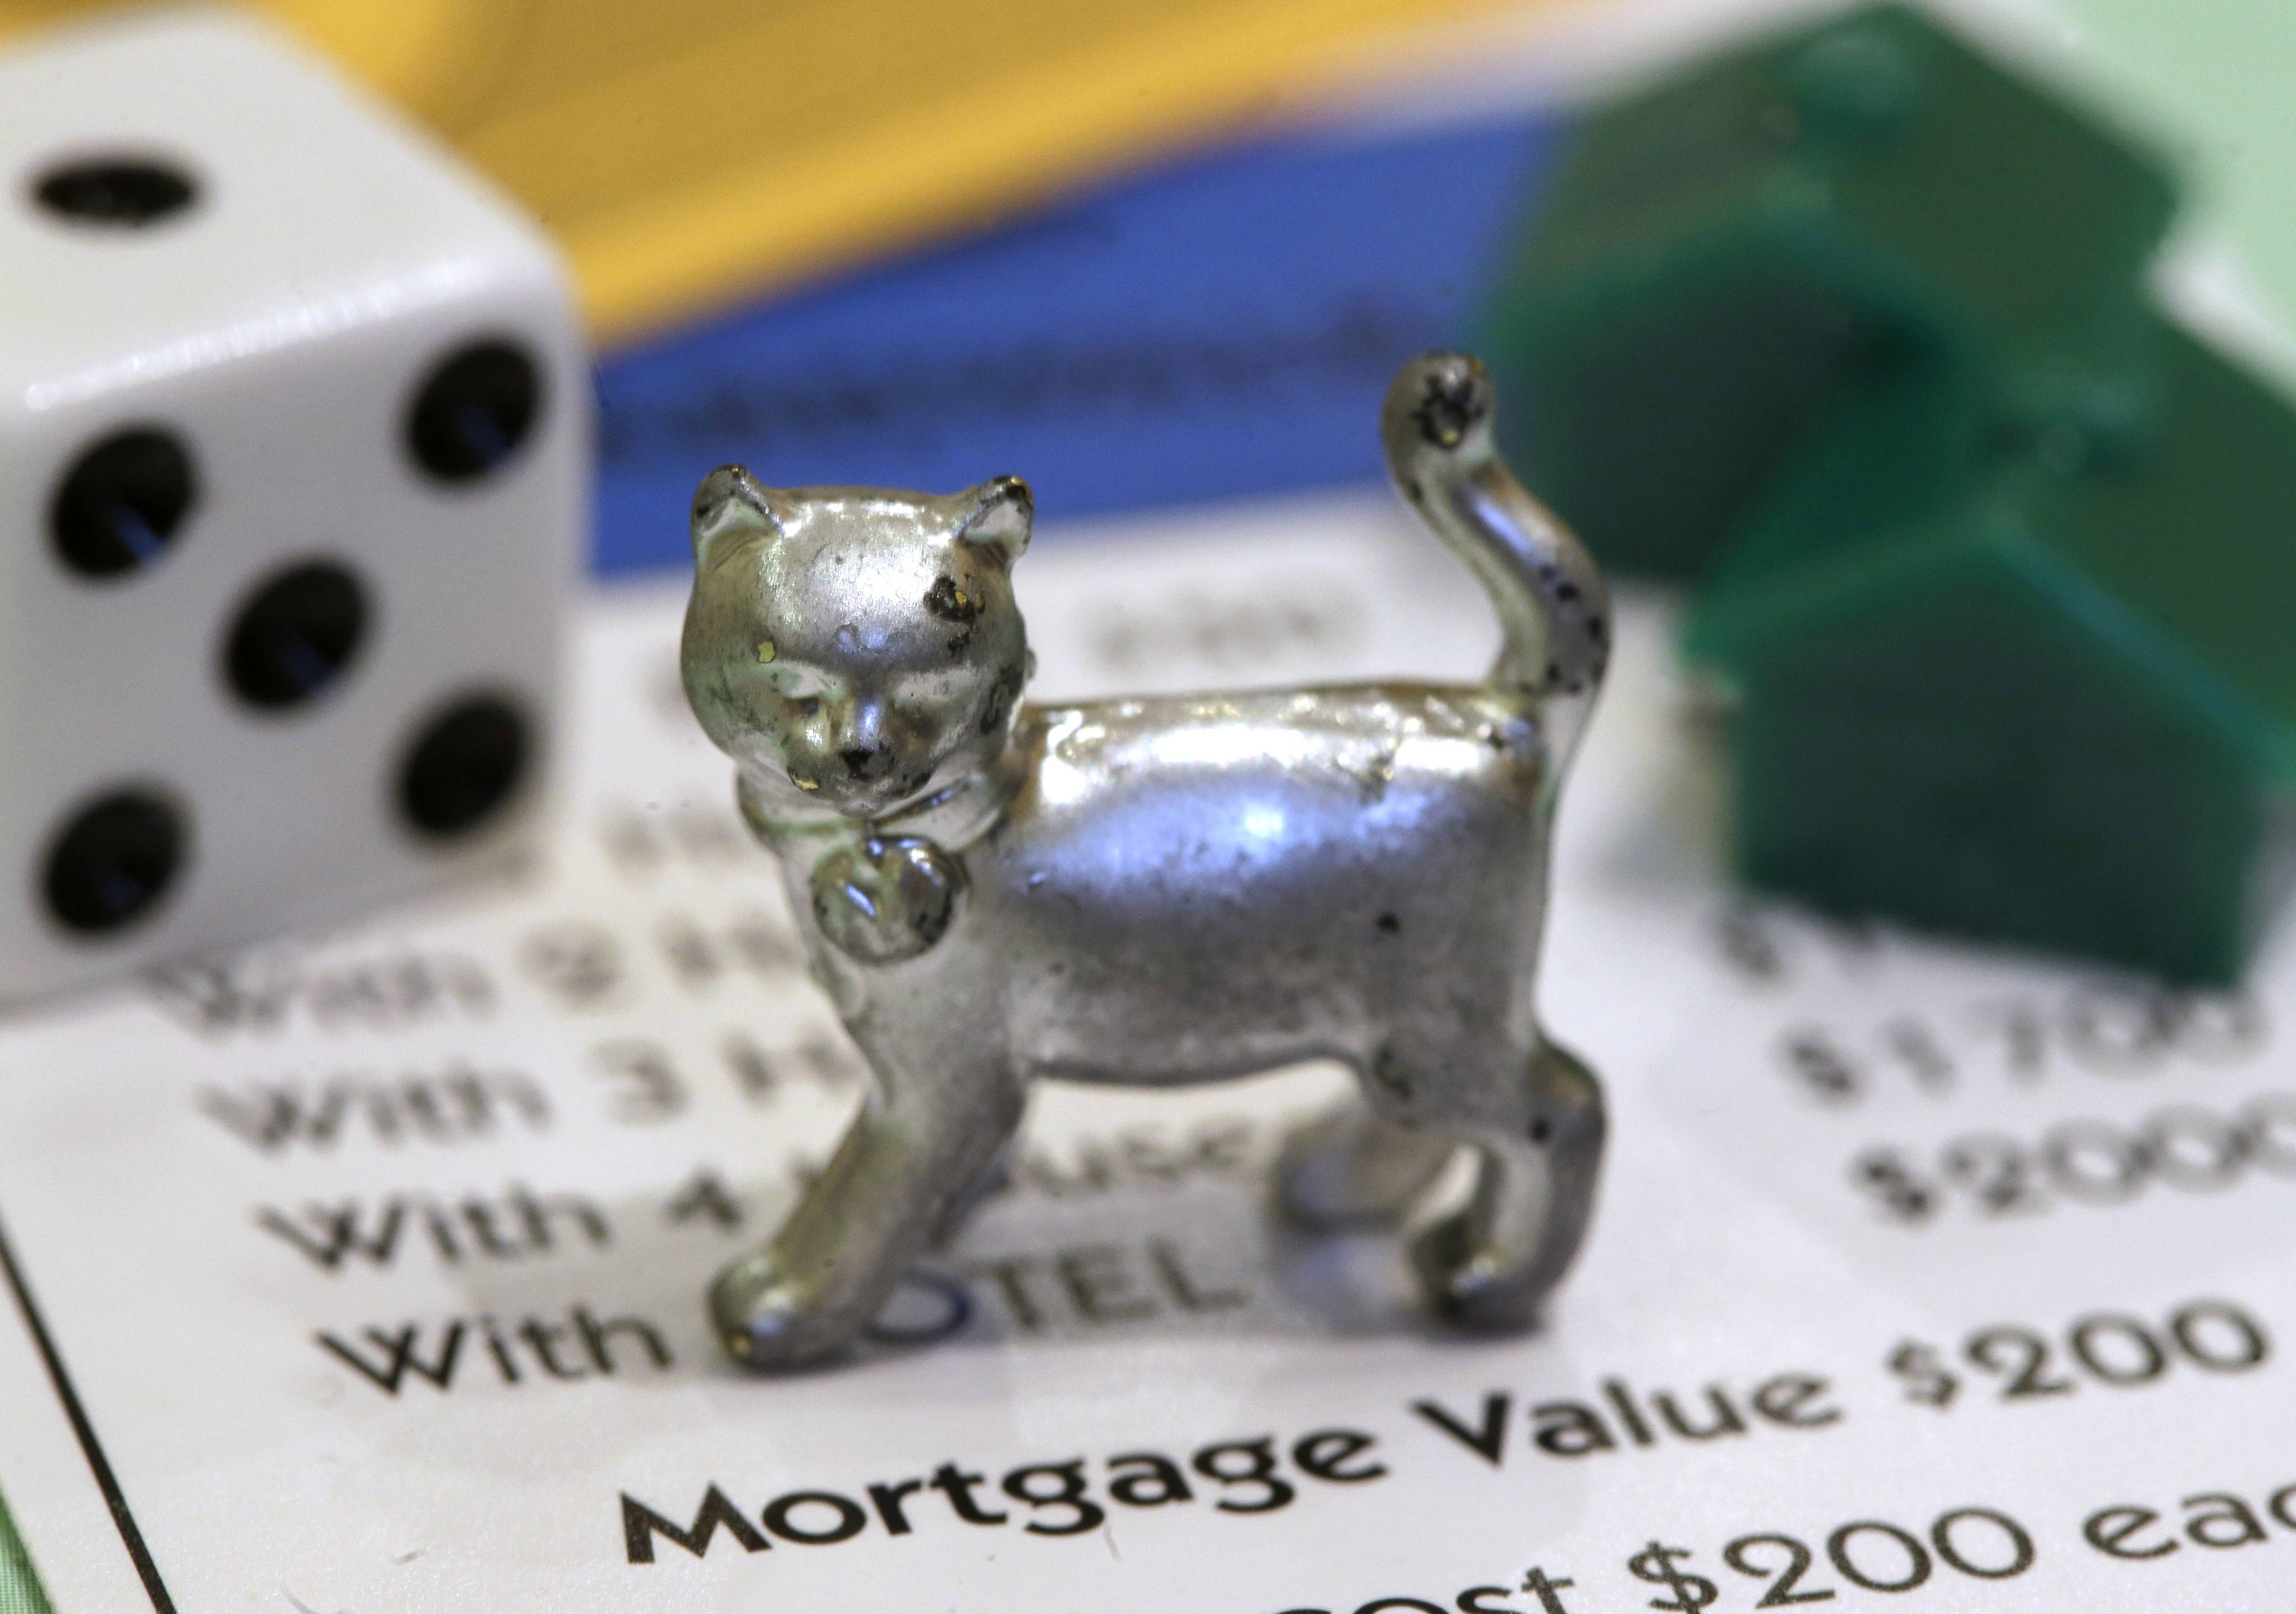 The cat Monopoly token on a Boardwalk deed next to a die and houses at Hasbro Inc. headquarters, in Pawtucket, R.I.